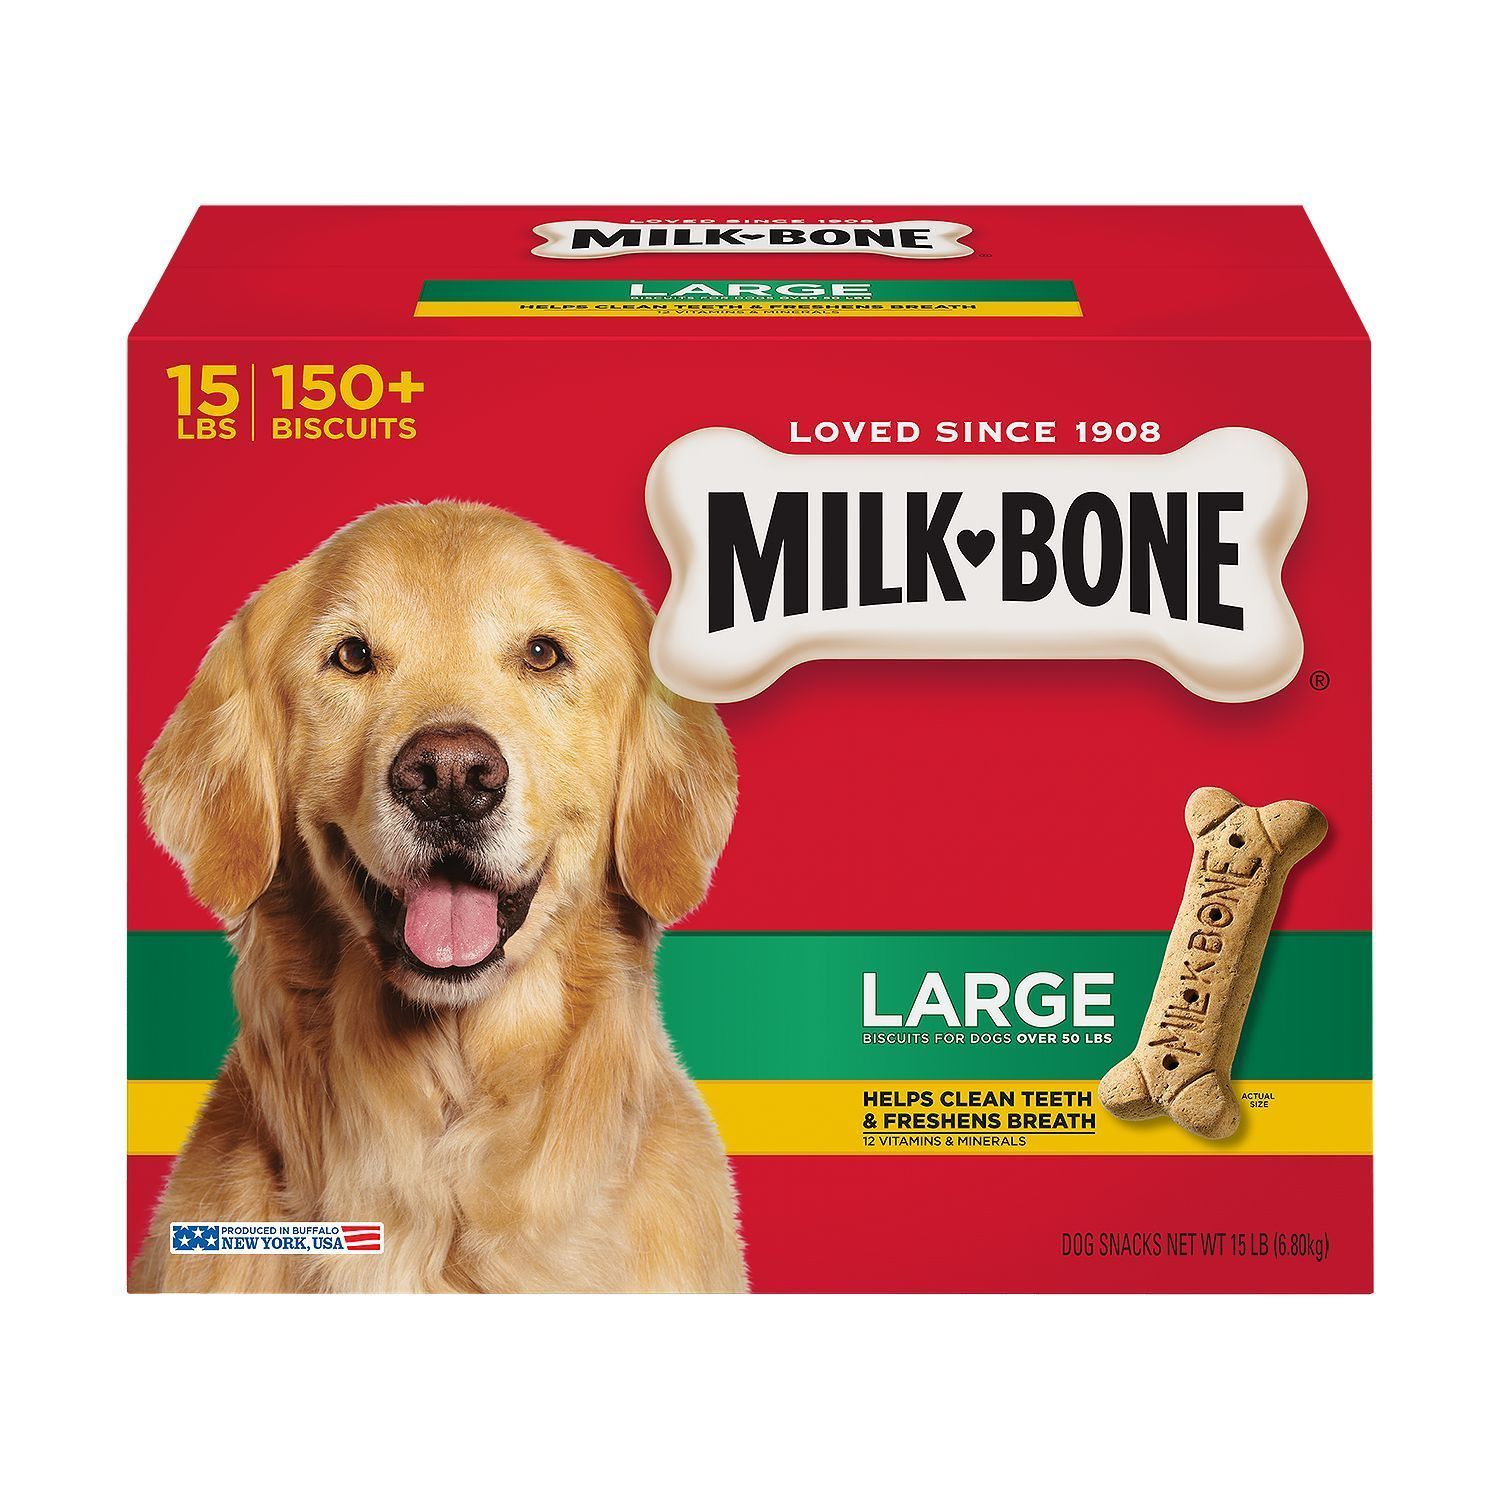 Details about Milk Bone Dog Biscuits Large 15 Lbs Snacks